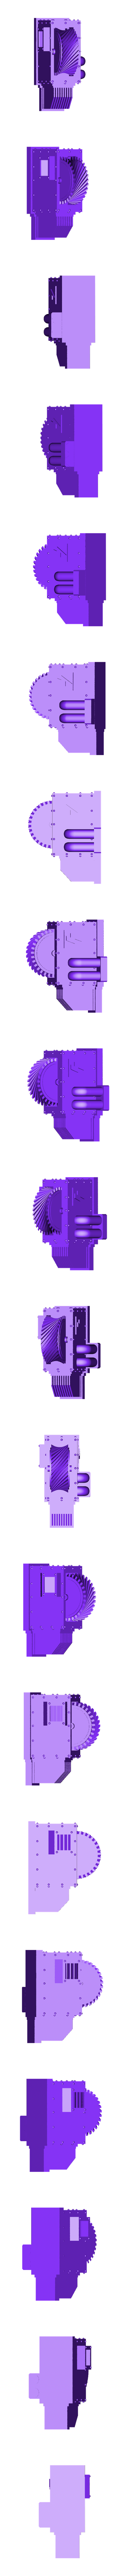 Machinery.stl Download free STL file Machine thingy terrain • 3D printable template, Daedle